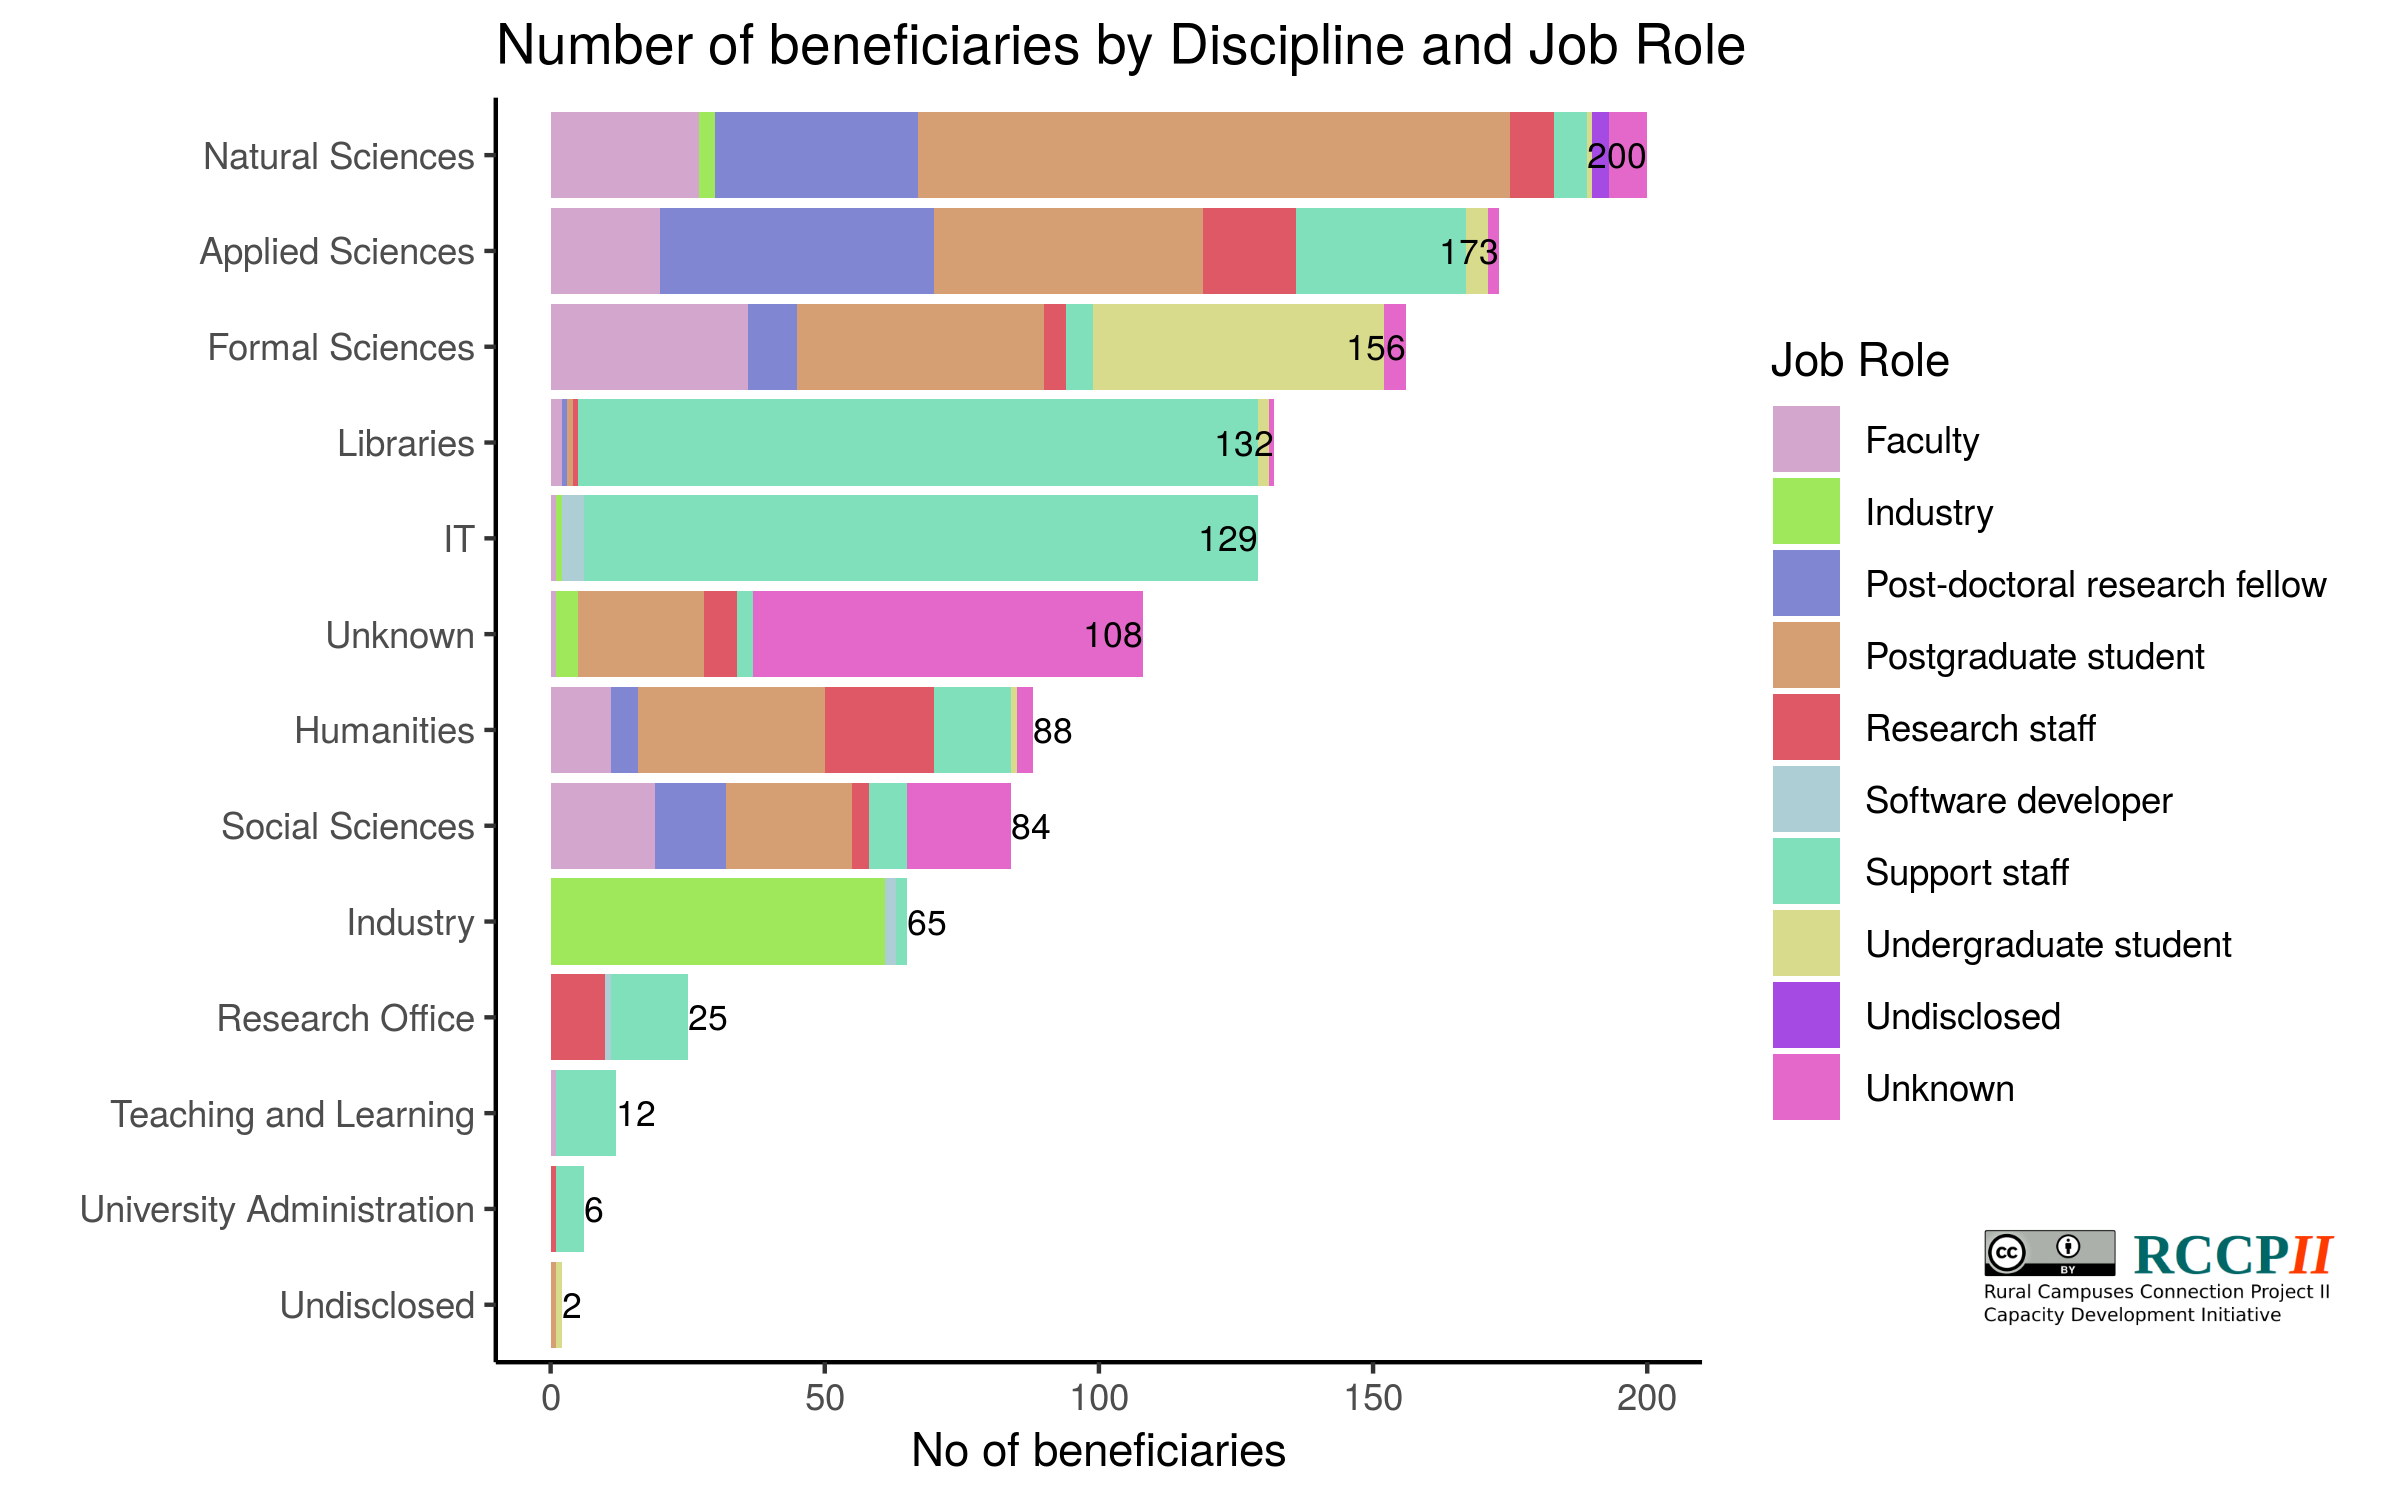 Participant distribution into discipline and job role